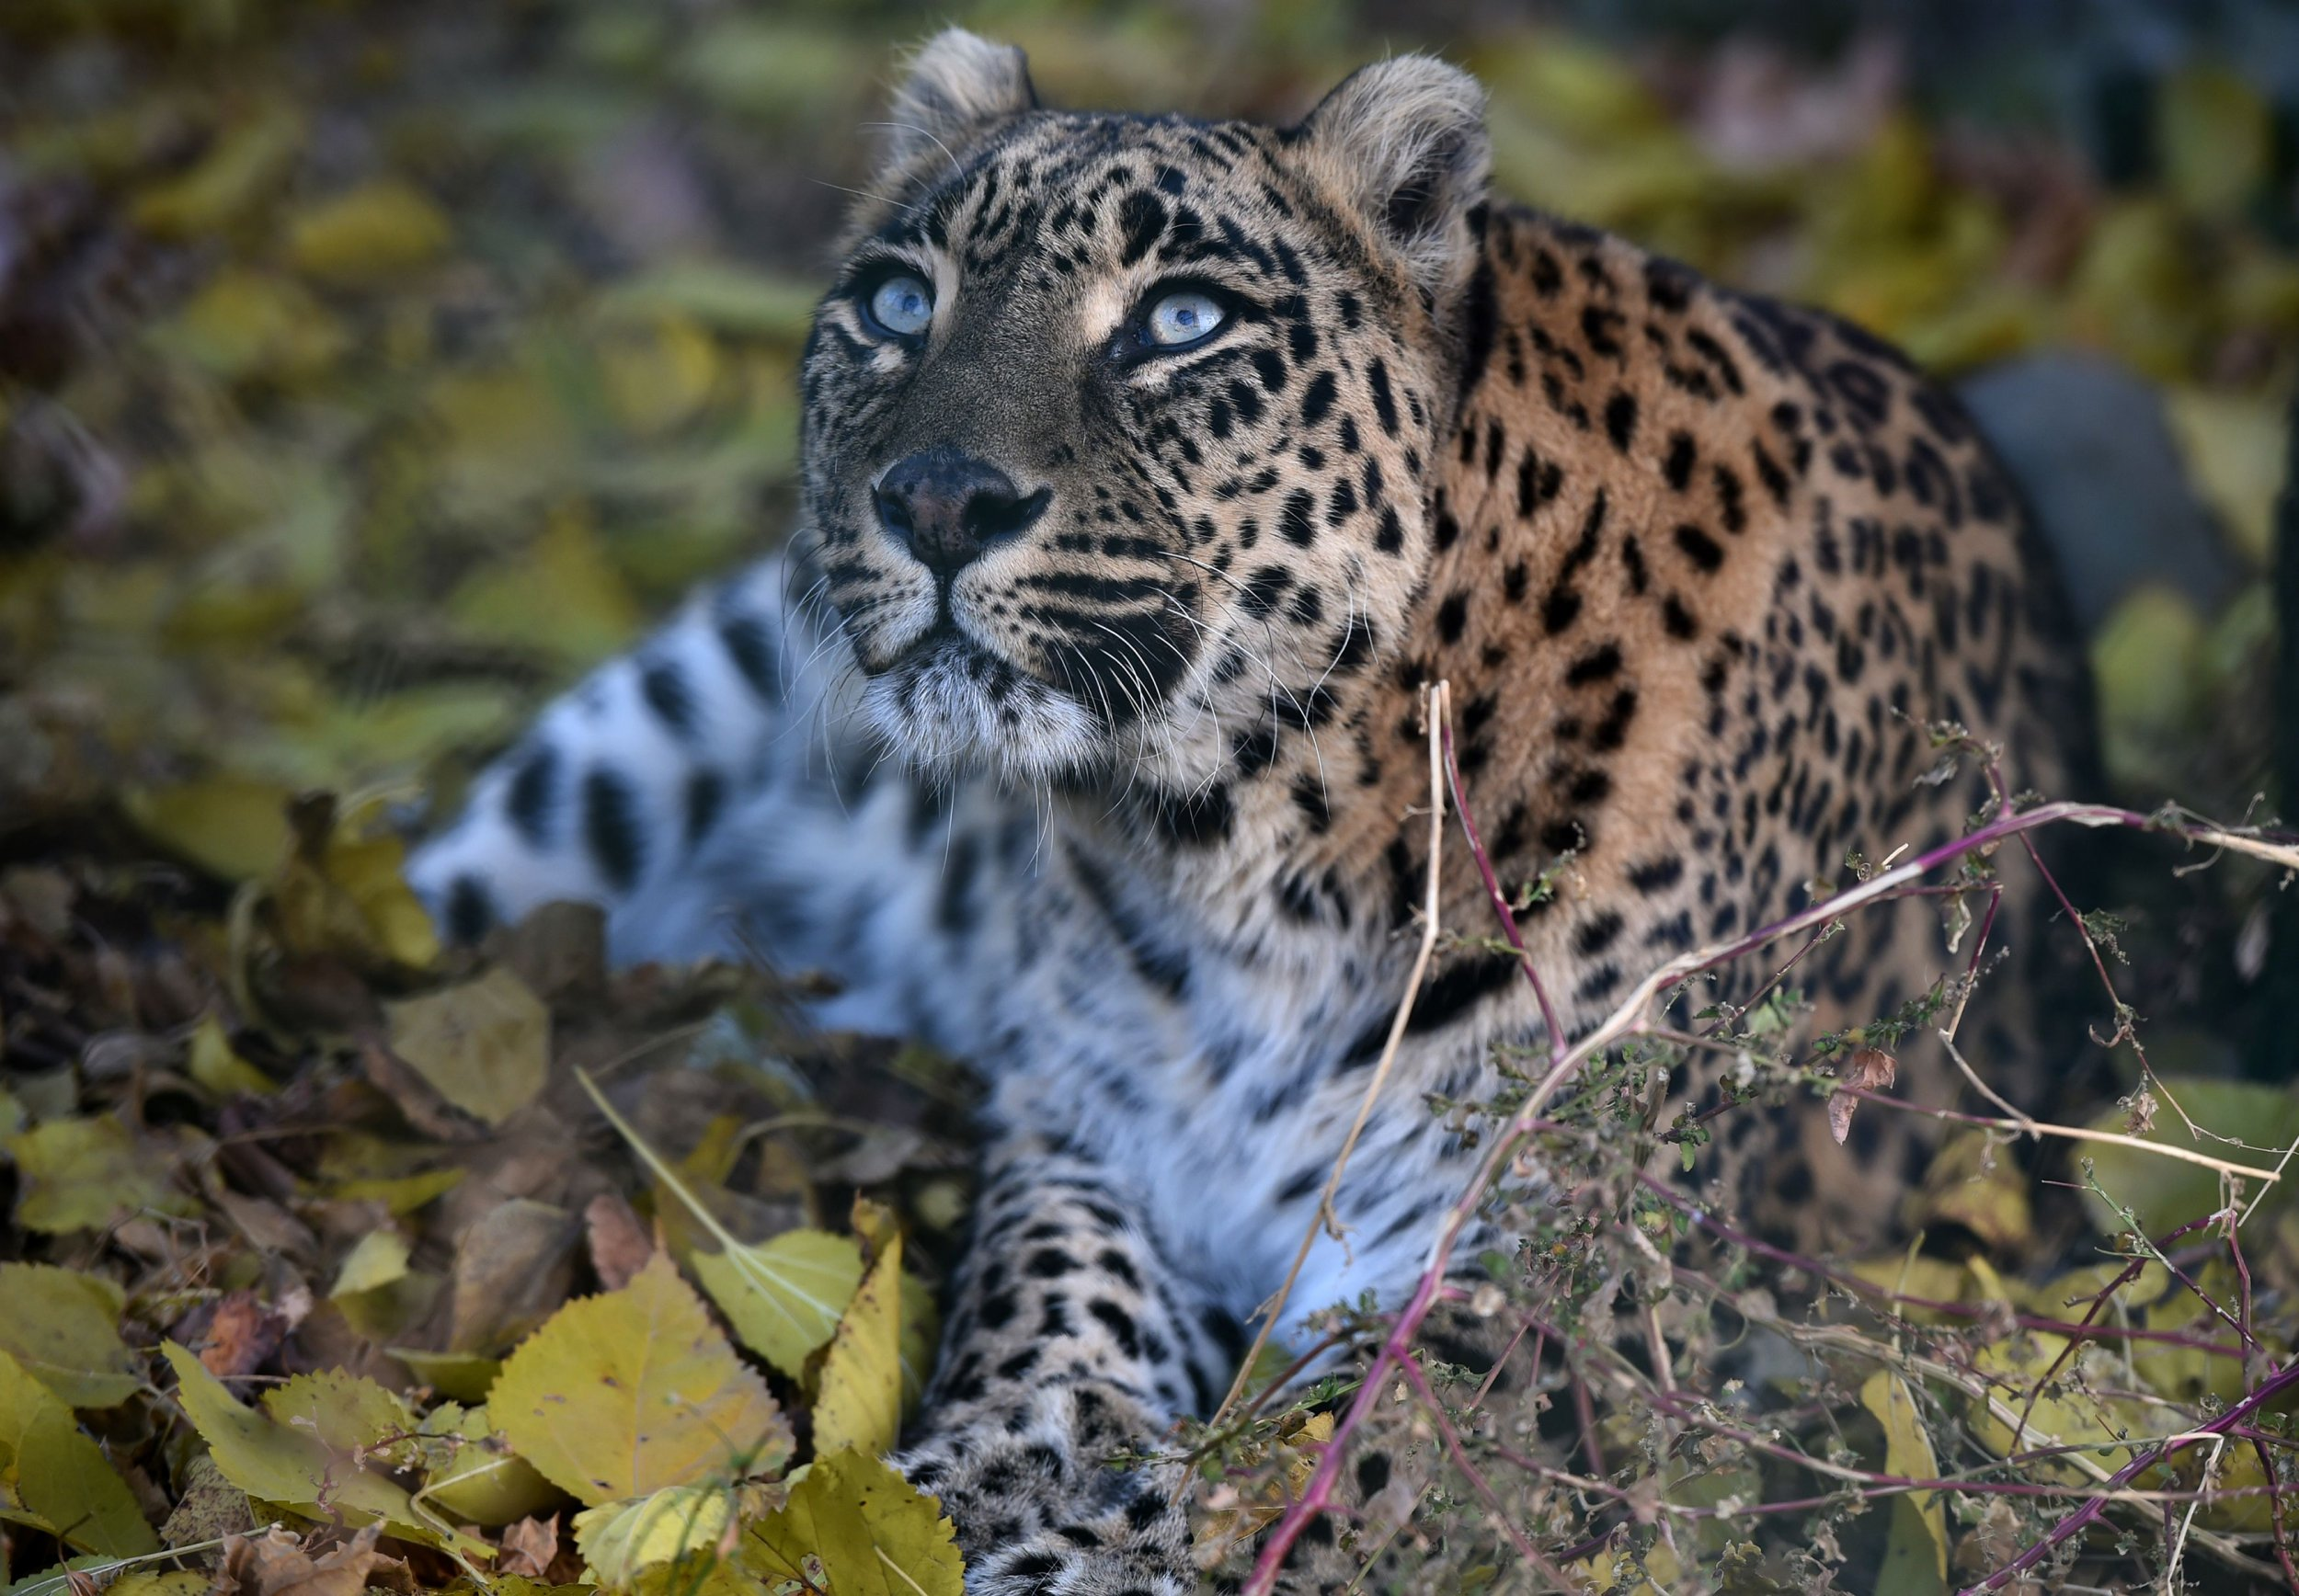 Leopard India Monk killed